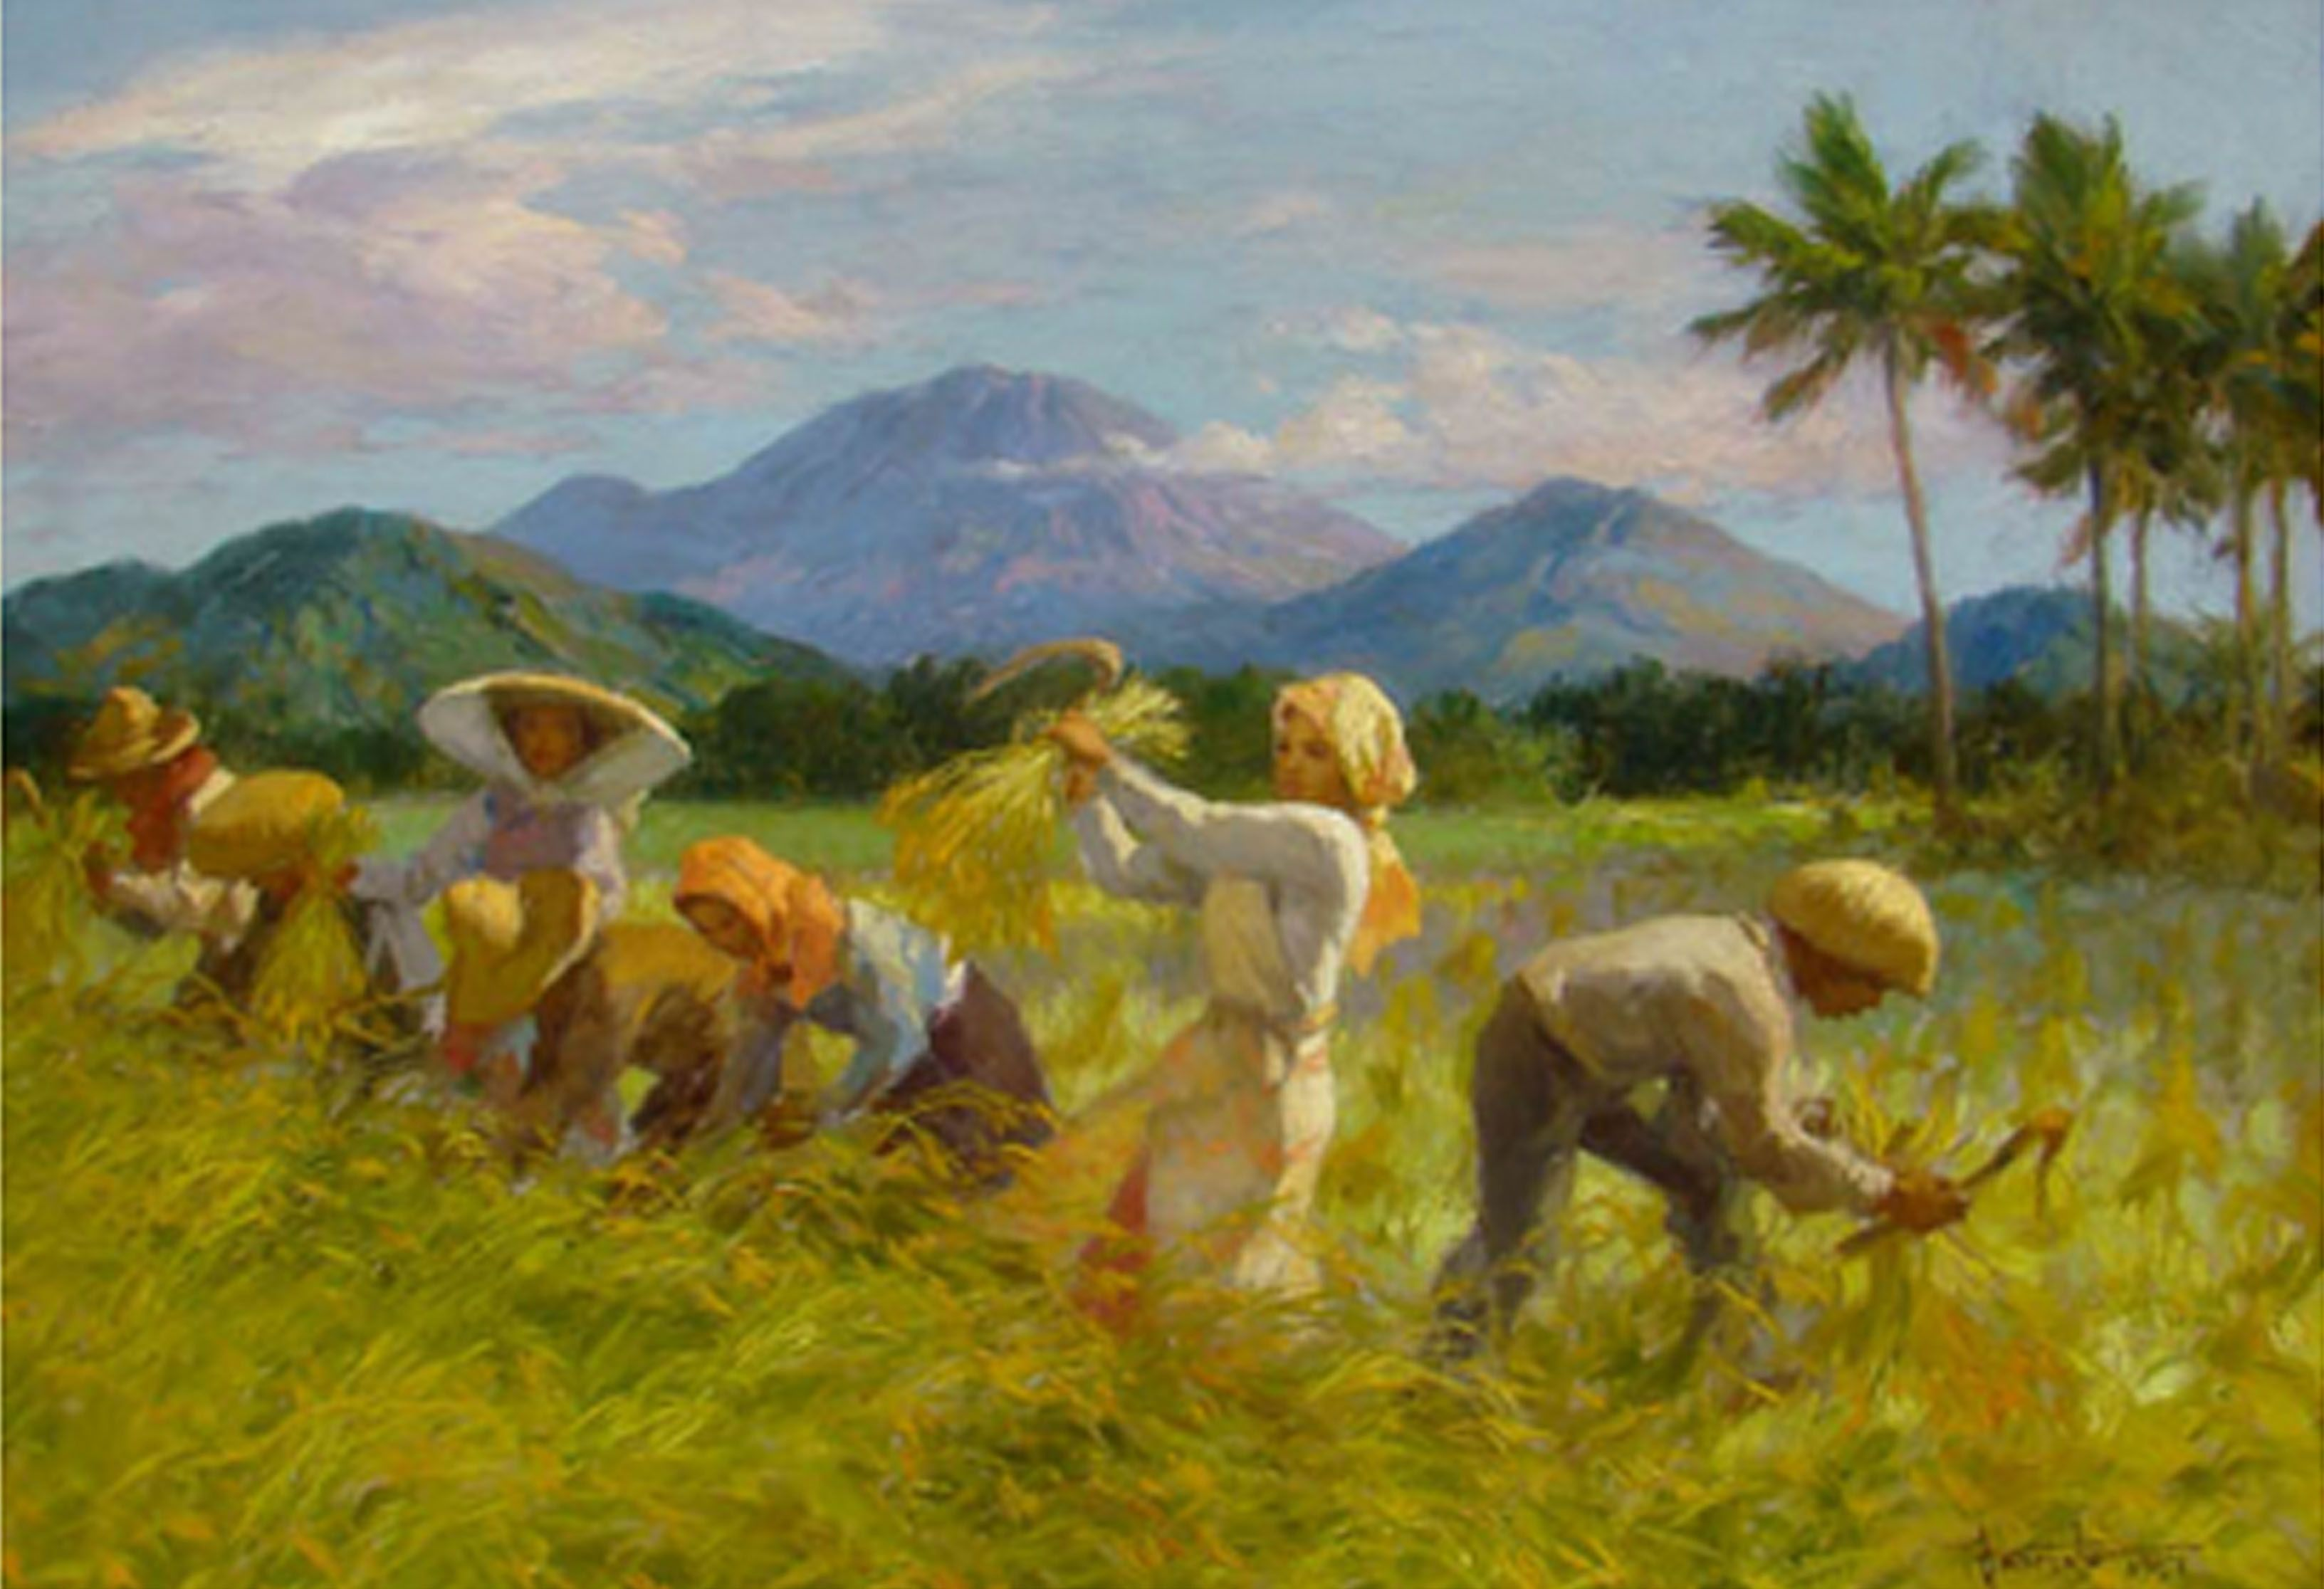 The mountains in Fernando Amorsolo's paintings Filipino